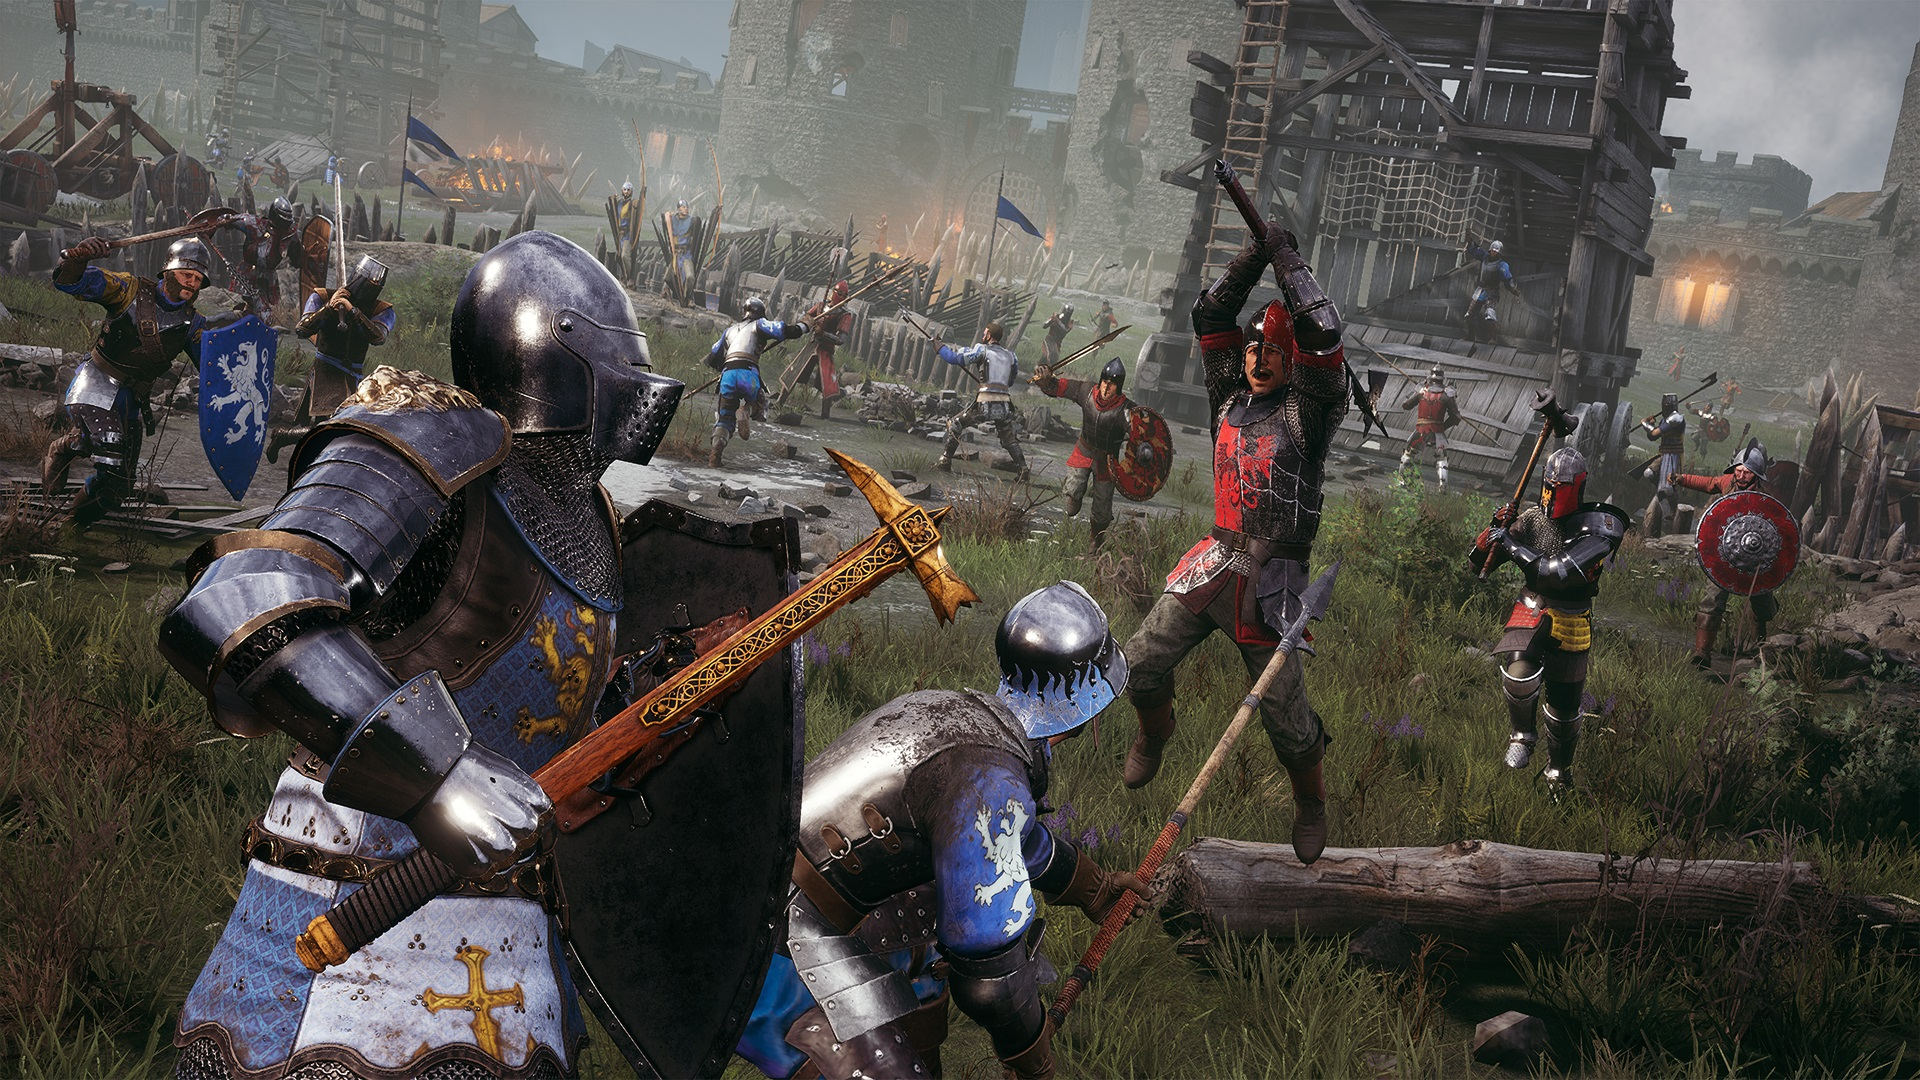 Two knights dressed in blue prepare to challenge a knight in red while other red teammates approach behind them. A siege tower stands in the background outside stone city walls.